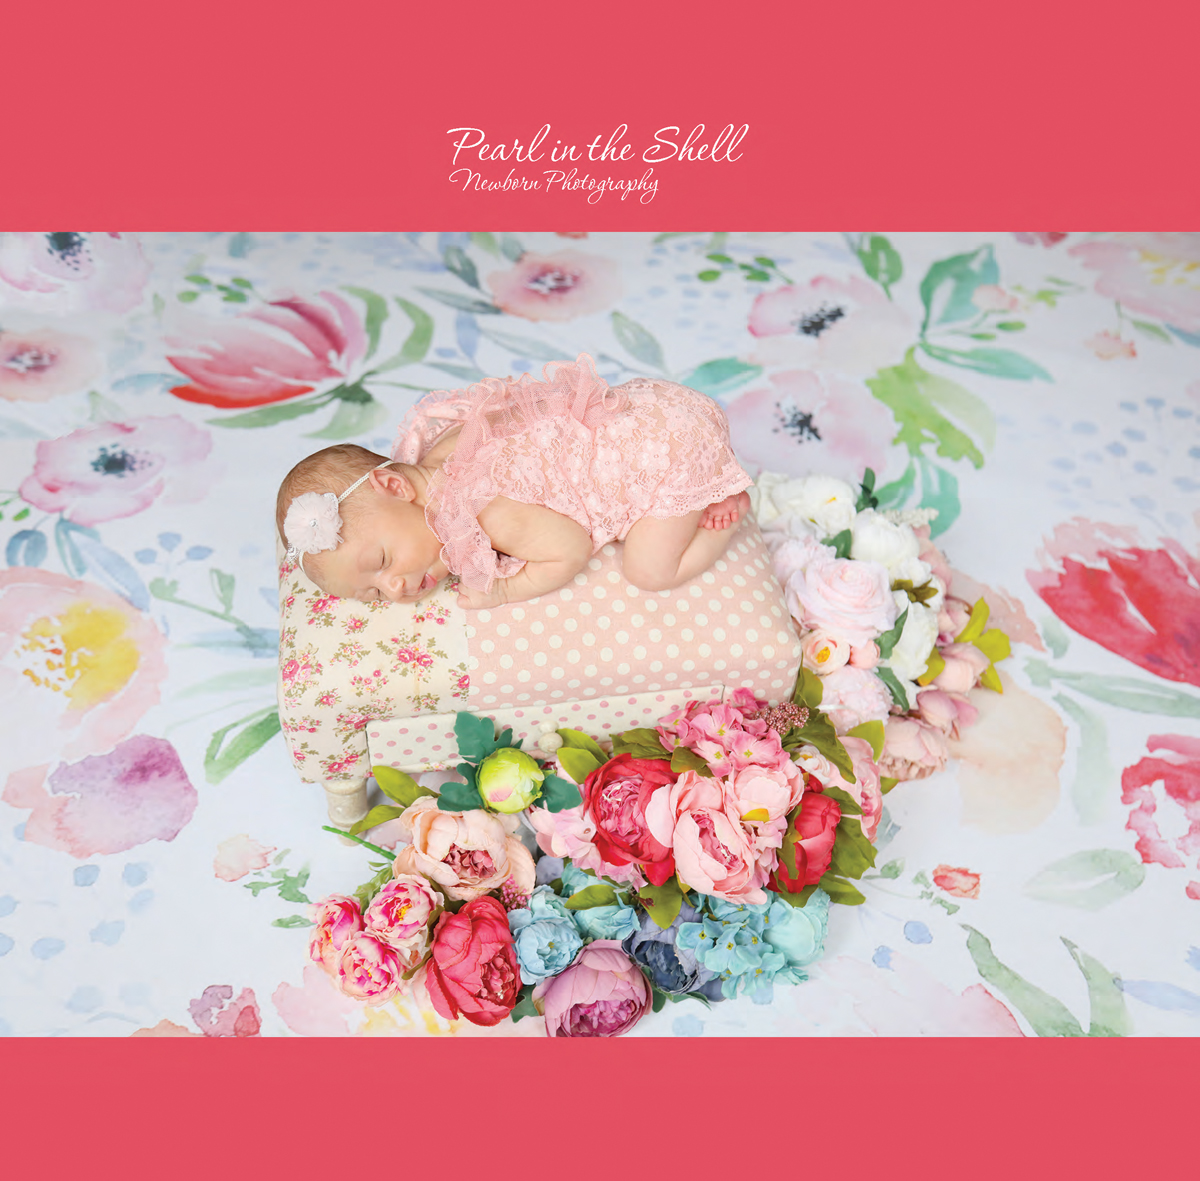 Pearl-in-the-Shell-Calendar-2020 (16)